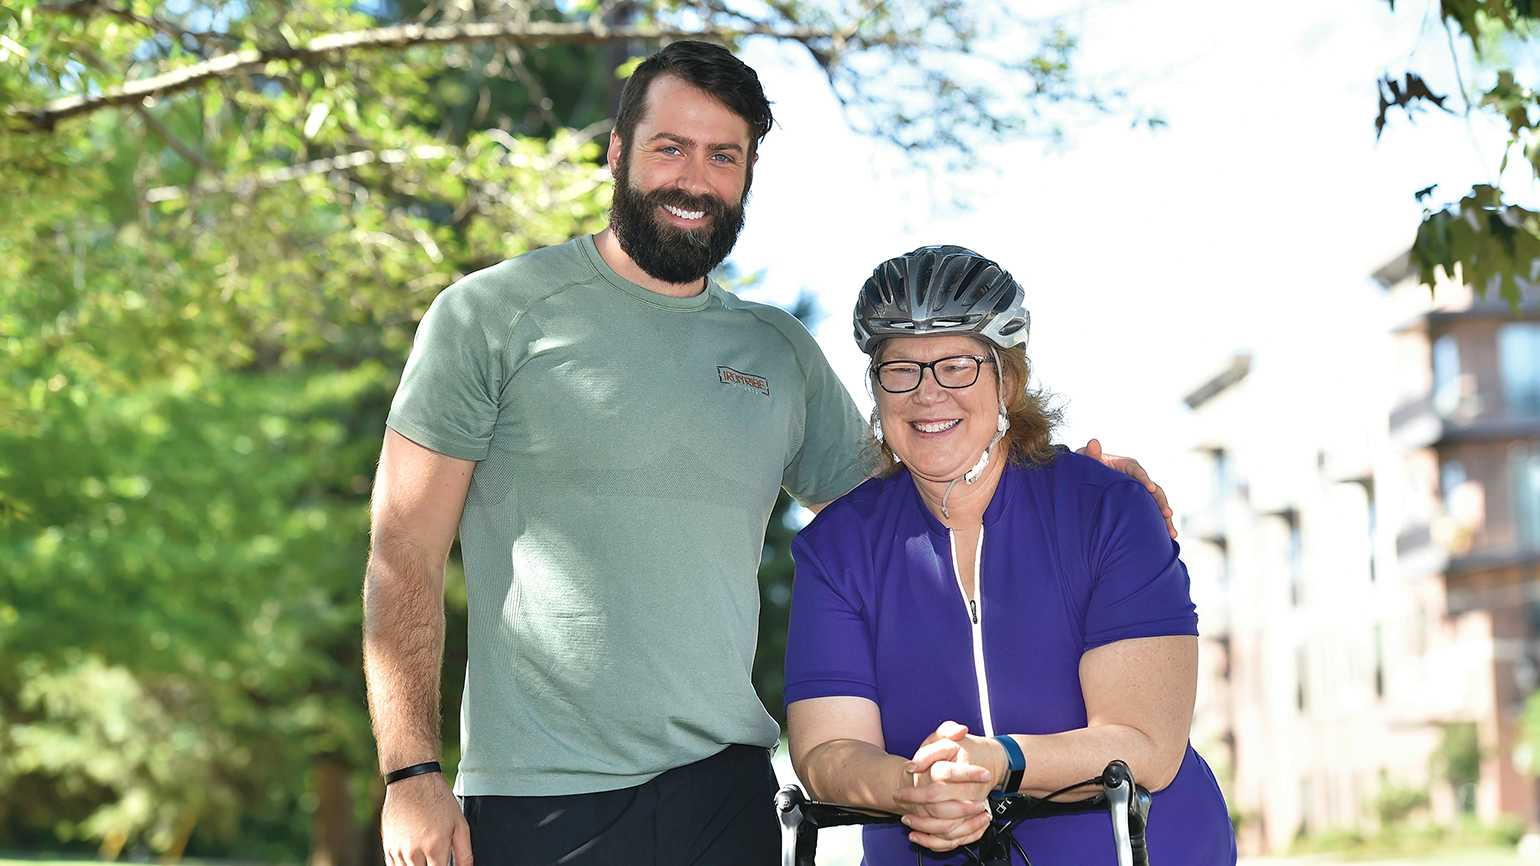 She Thought Obesity Was Her Destiny—Her Trainer Disagreed